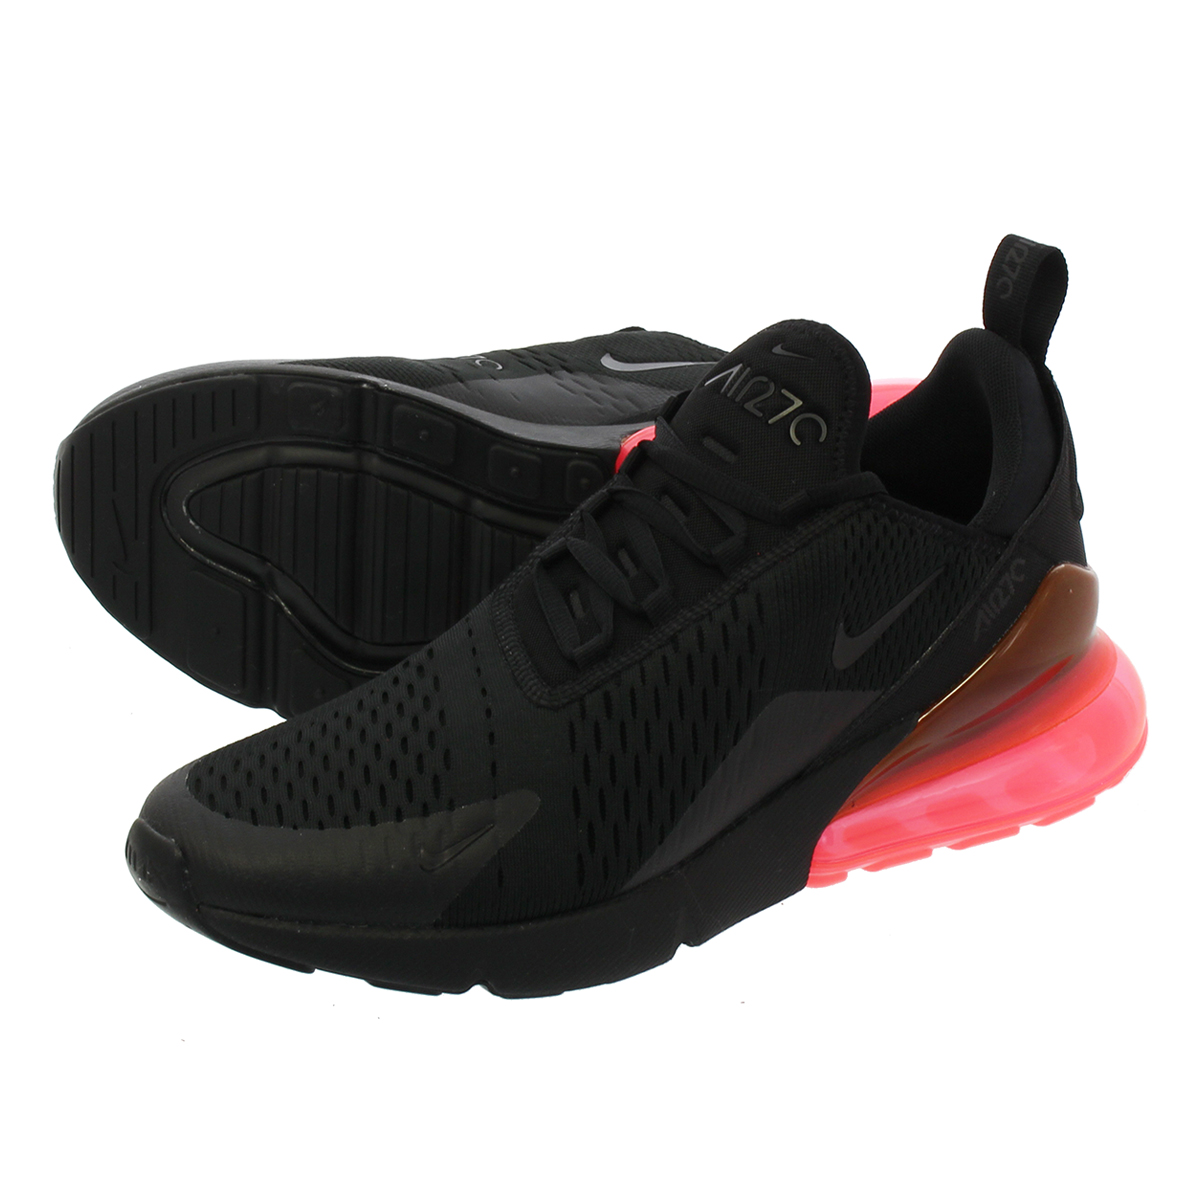 new products 1b115 27100 NIKE AIR MAX 270 Kie Ney AMAX 270 BLACK/HOT PUNCH